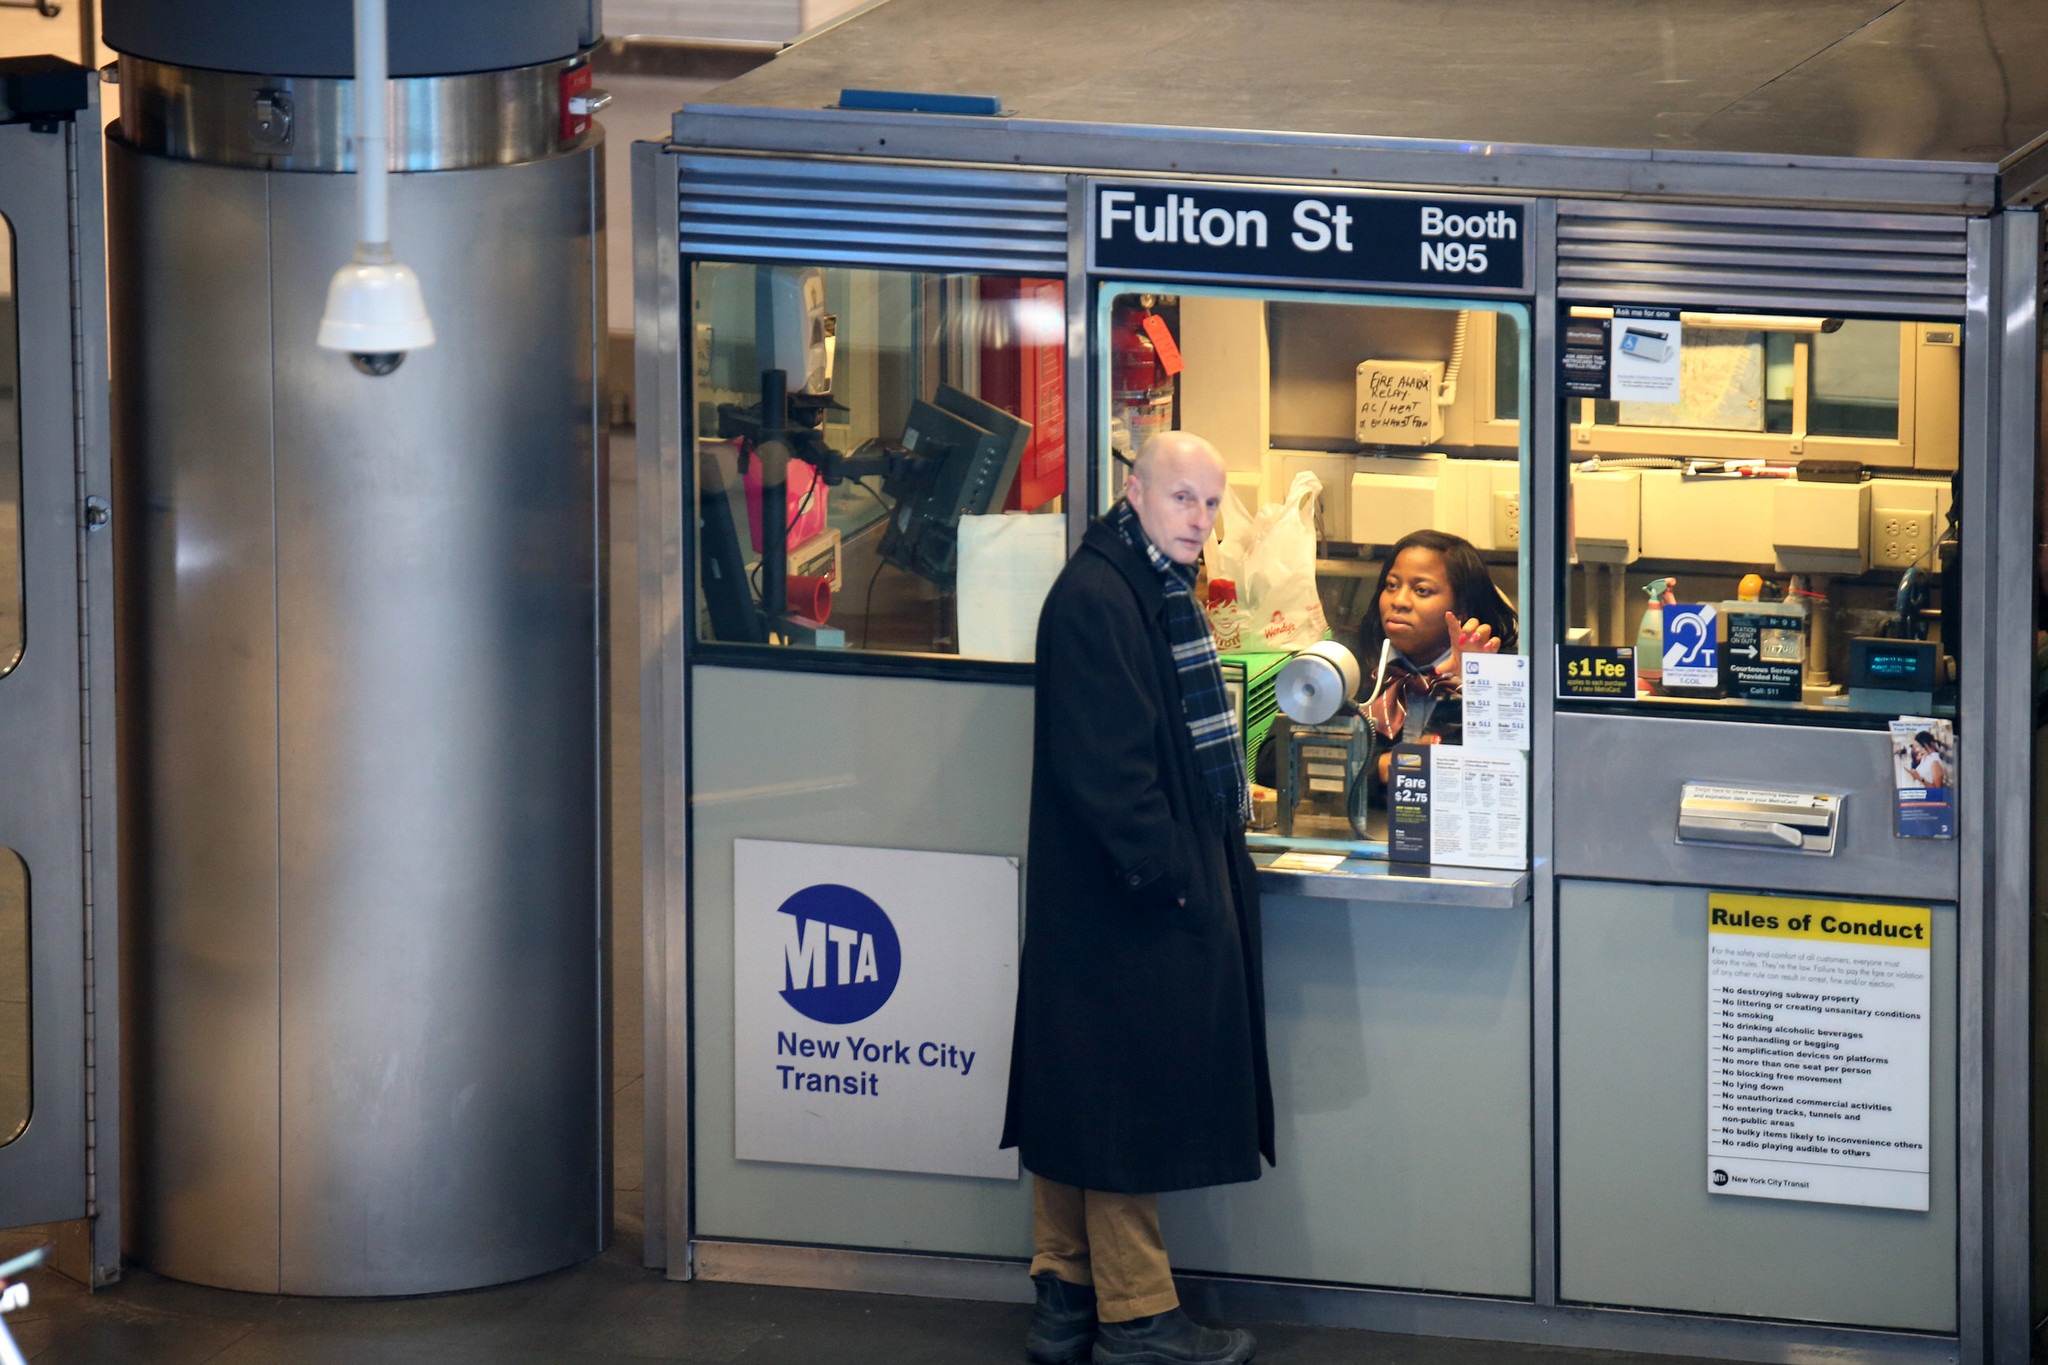 Bye-bye Byford: Departing NYC Transit chief will be remembered fondly by city's mass transit riders after two years of noticeable progress